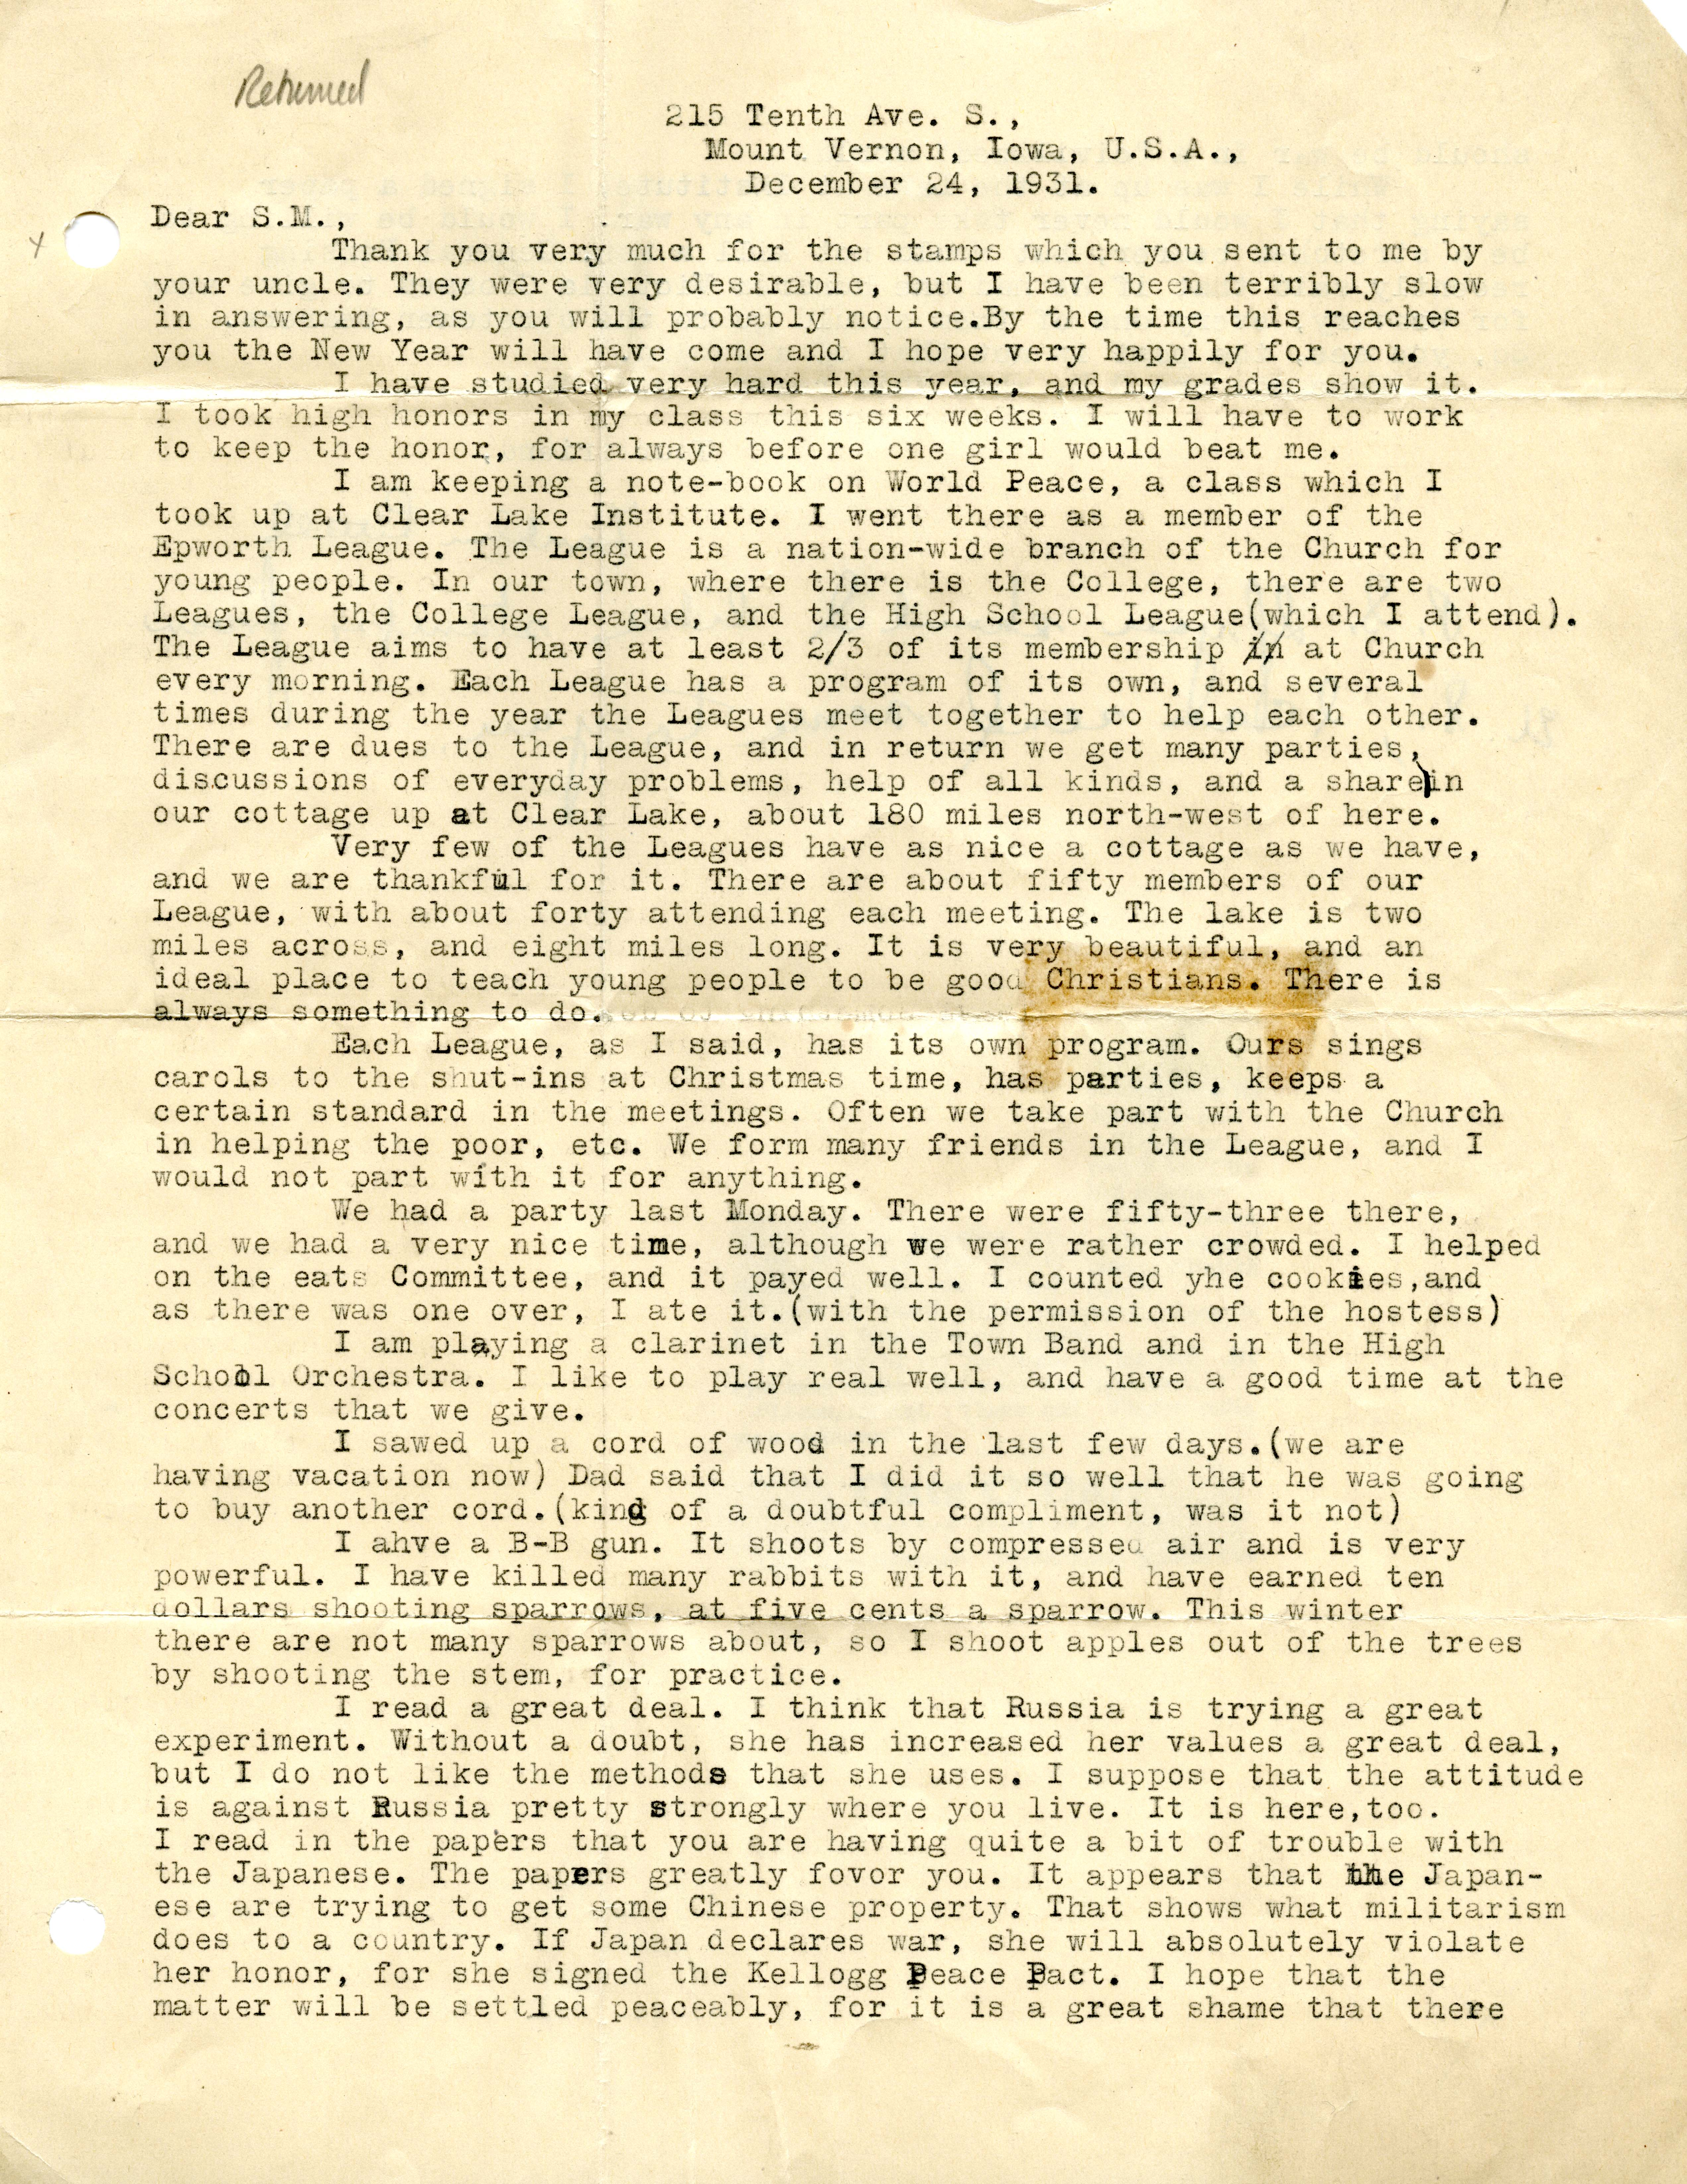 Page one of a typed letter on yellowed paper.